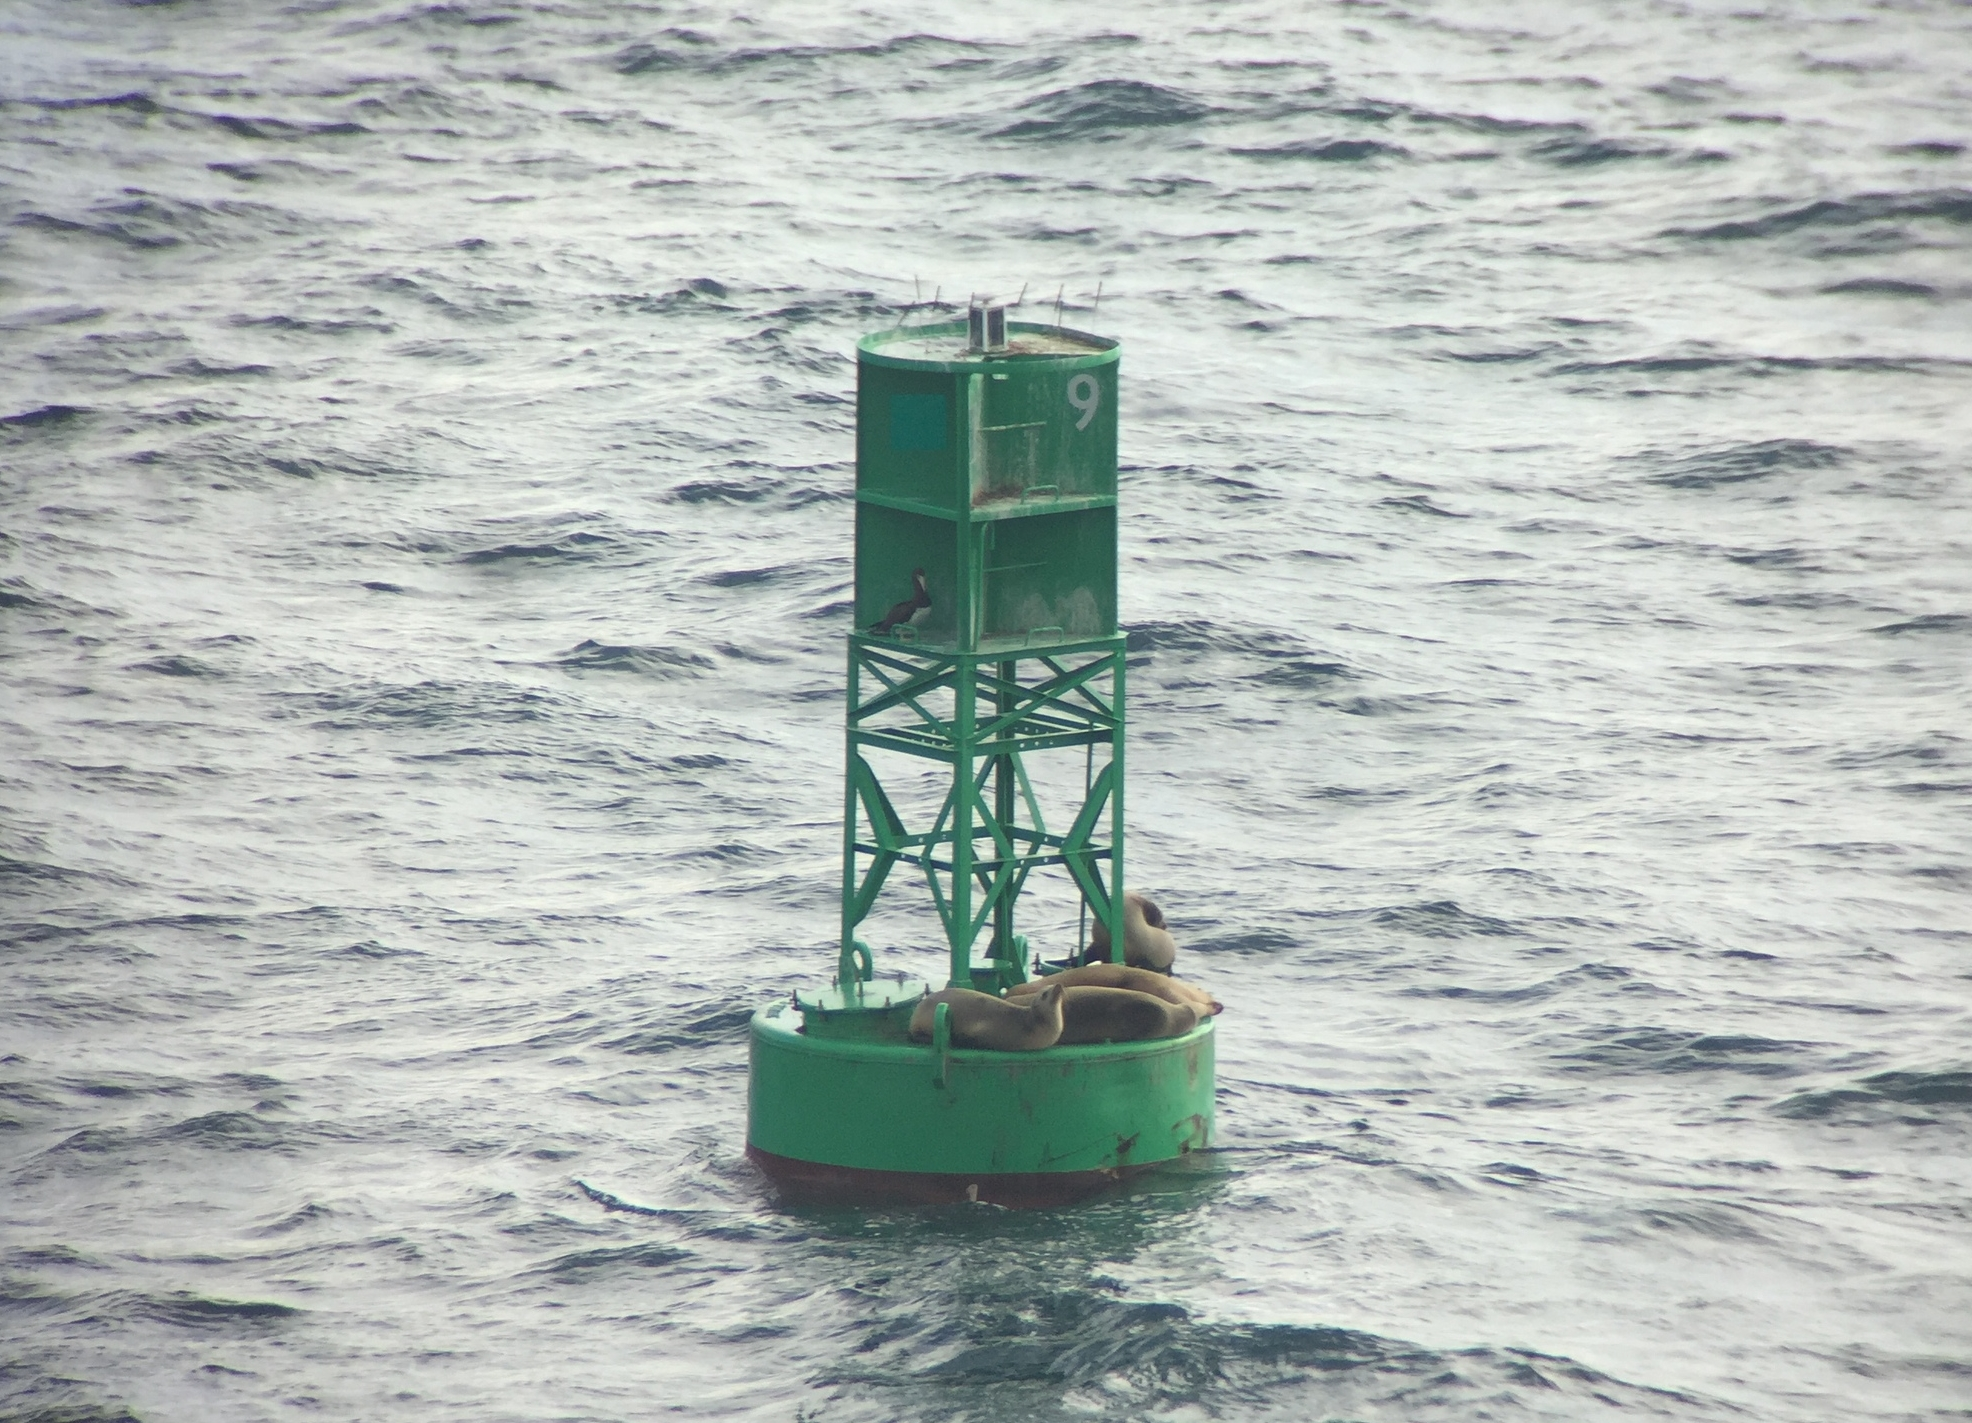 Brown Booby perched below and left of the '9' channel marker. Four California Sea lions also shared their perch                         Digiscoped with iPhone 6 and Swarovski ATX spotting scope